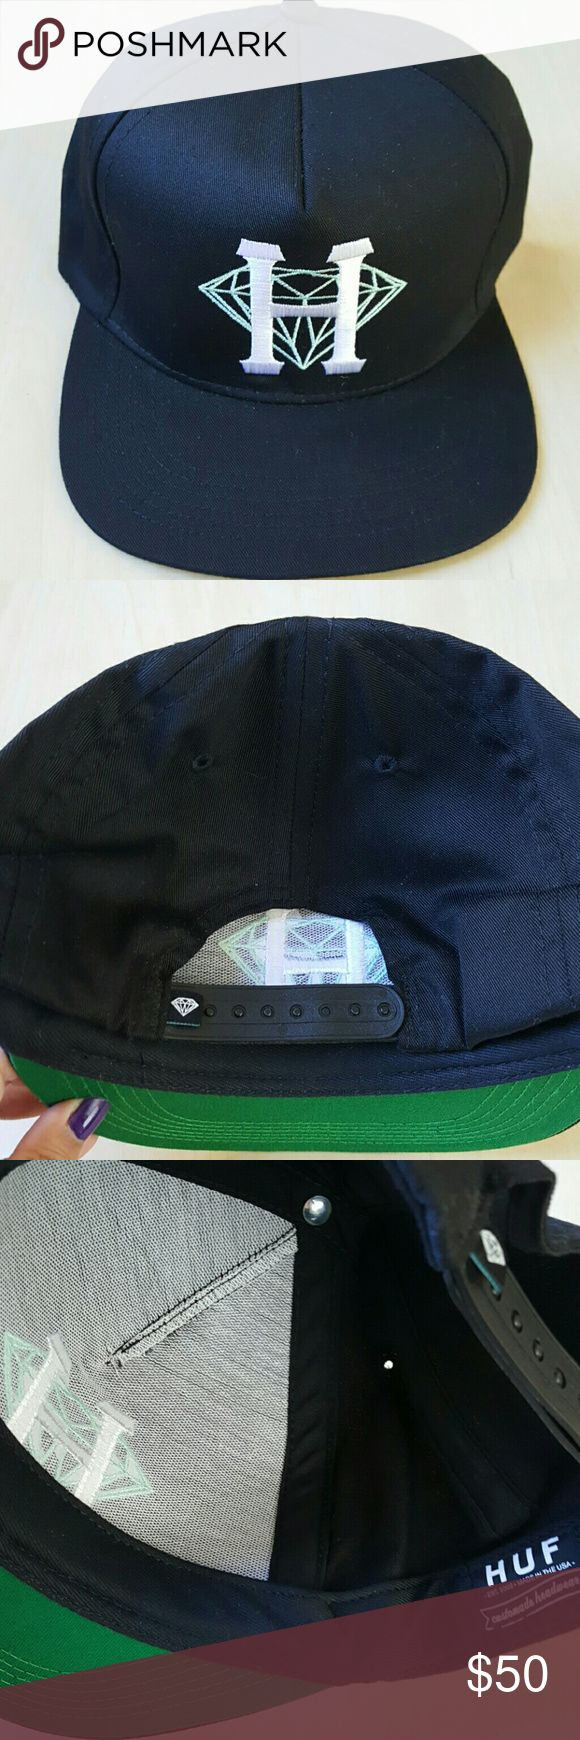 Diamond Supply Co x HUF snapback hat Condition: Worn once   × OPEN TO REASONABLE OFFERS  × NO LOWBALLING  × NO SALES OUTSIDE OF POSHMARK × NO TRADES  × SERIOUS INQUIRIES ONLY   × IF YOU FIND AN ITEM I'M SELLING CHEAPER SOMEWHERE ELSE, COOL, BUY IT THERE. NO NEED TO INFORM ME . IT'S NOT GOING TO MAKE ME CHANGE MY PRICE. THANKS. Diamond Supply Co. Accessories Hats